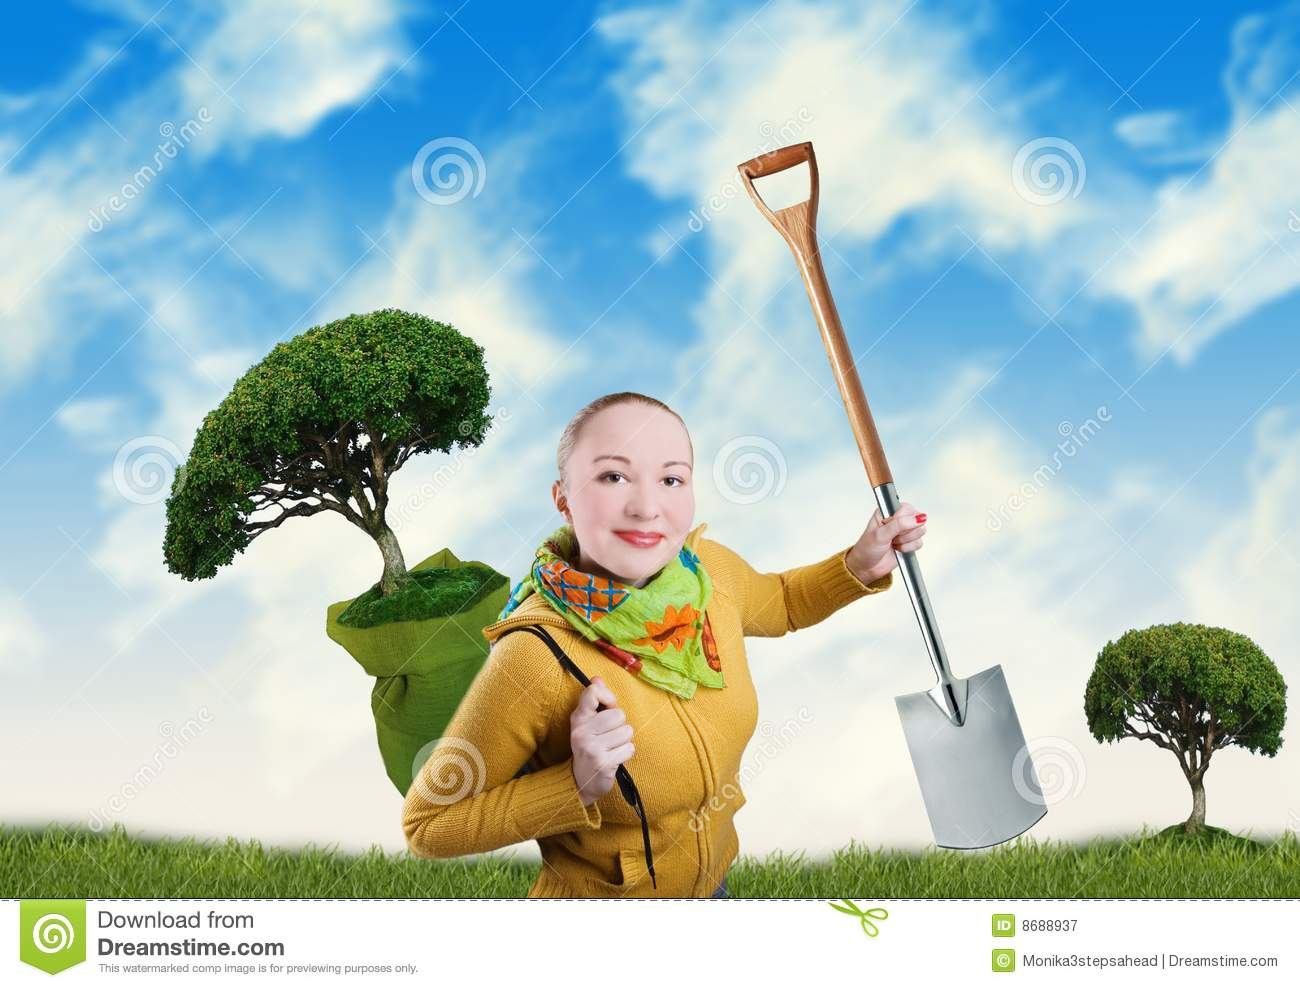 Woman with tree and spade